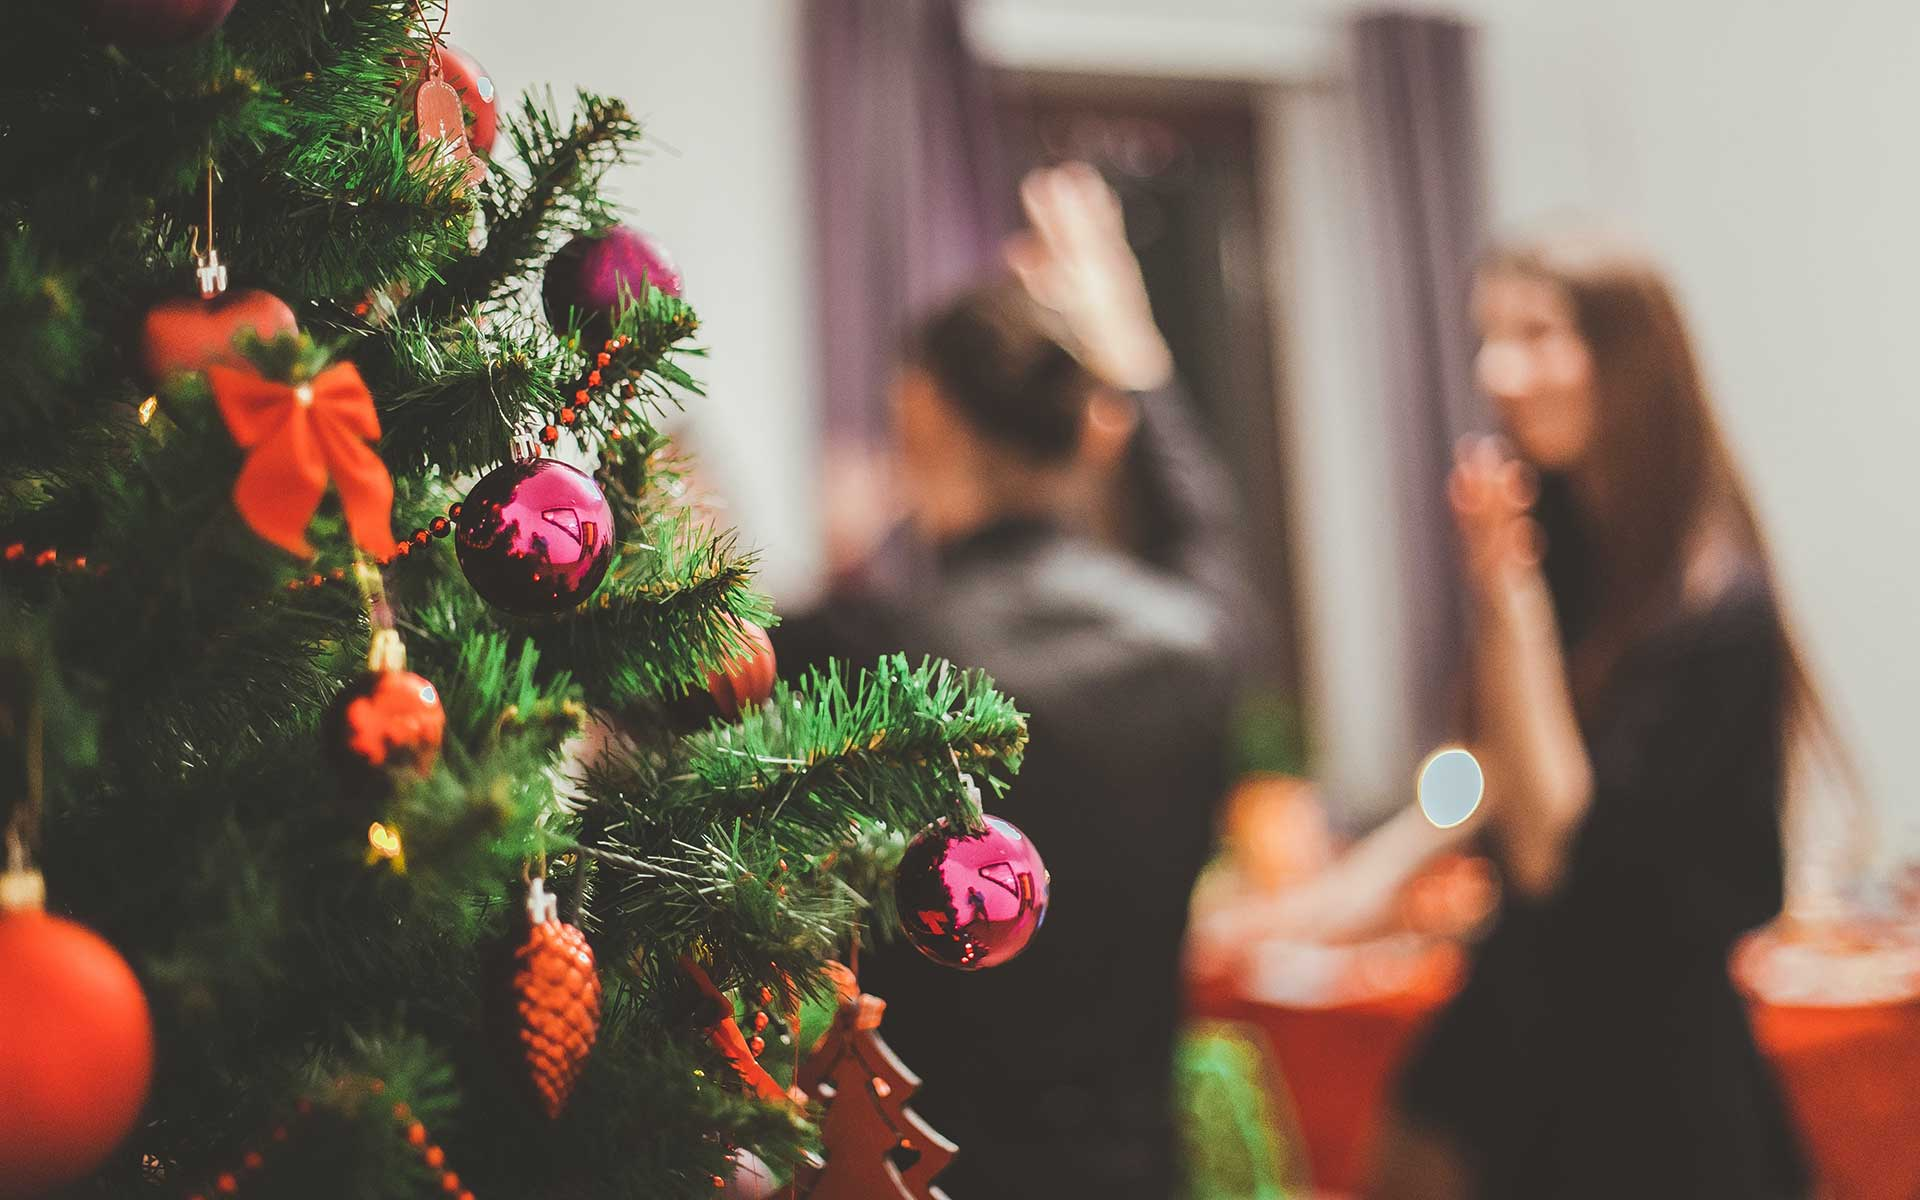 Episode 5: Tips for Surviving Crises During the Holidays